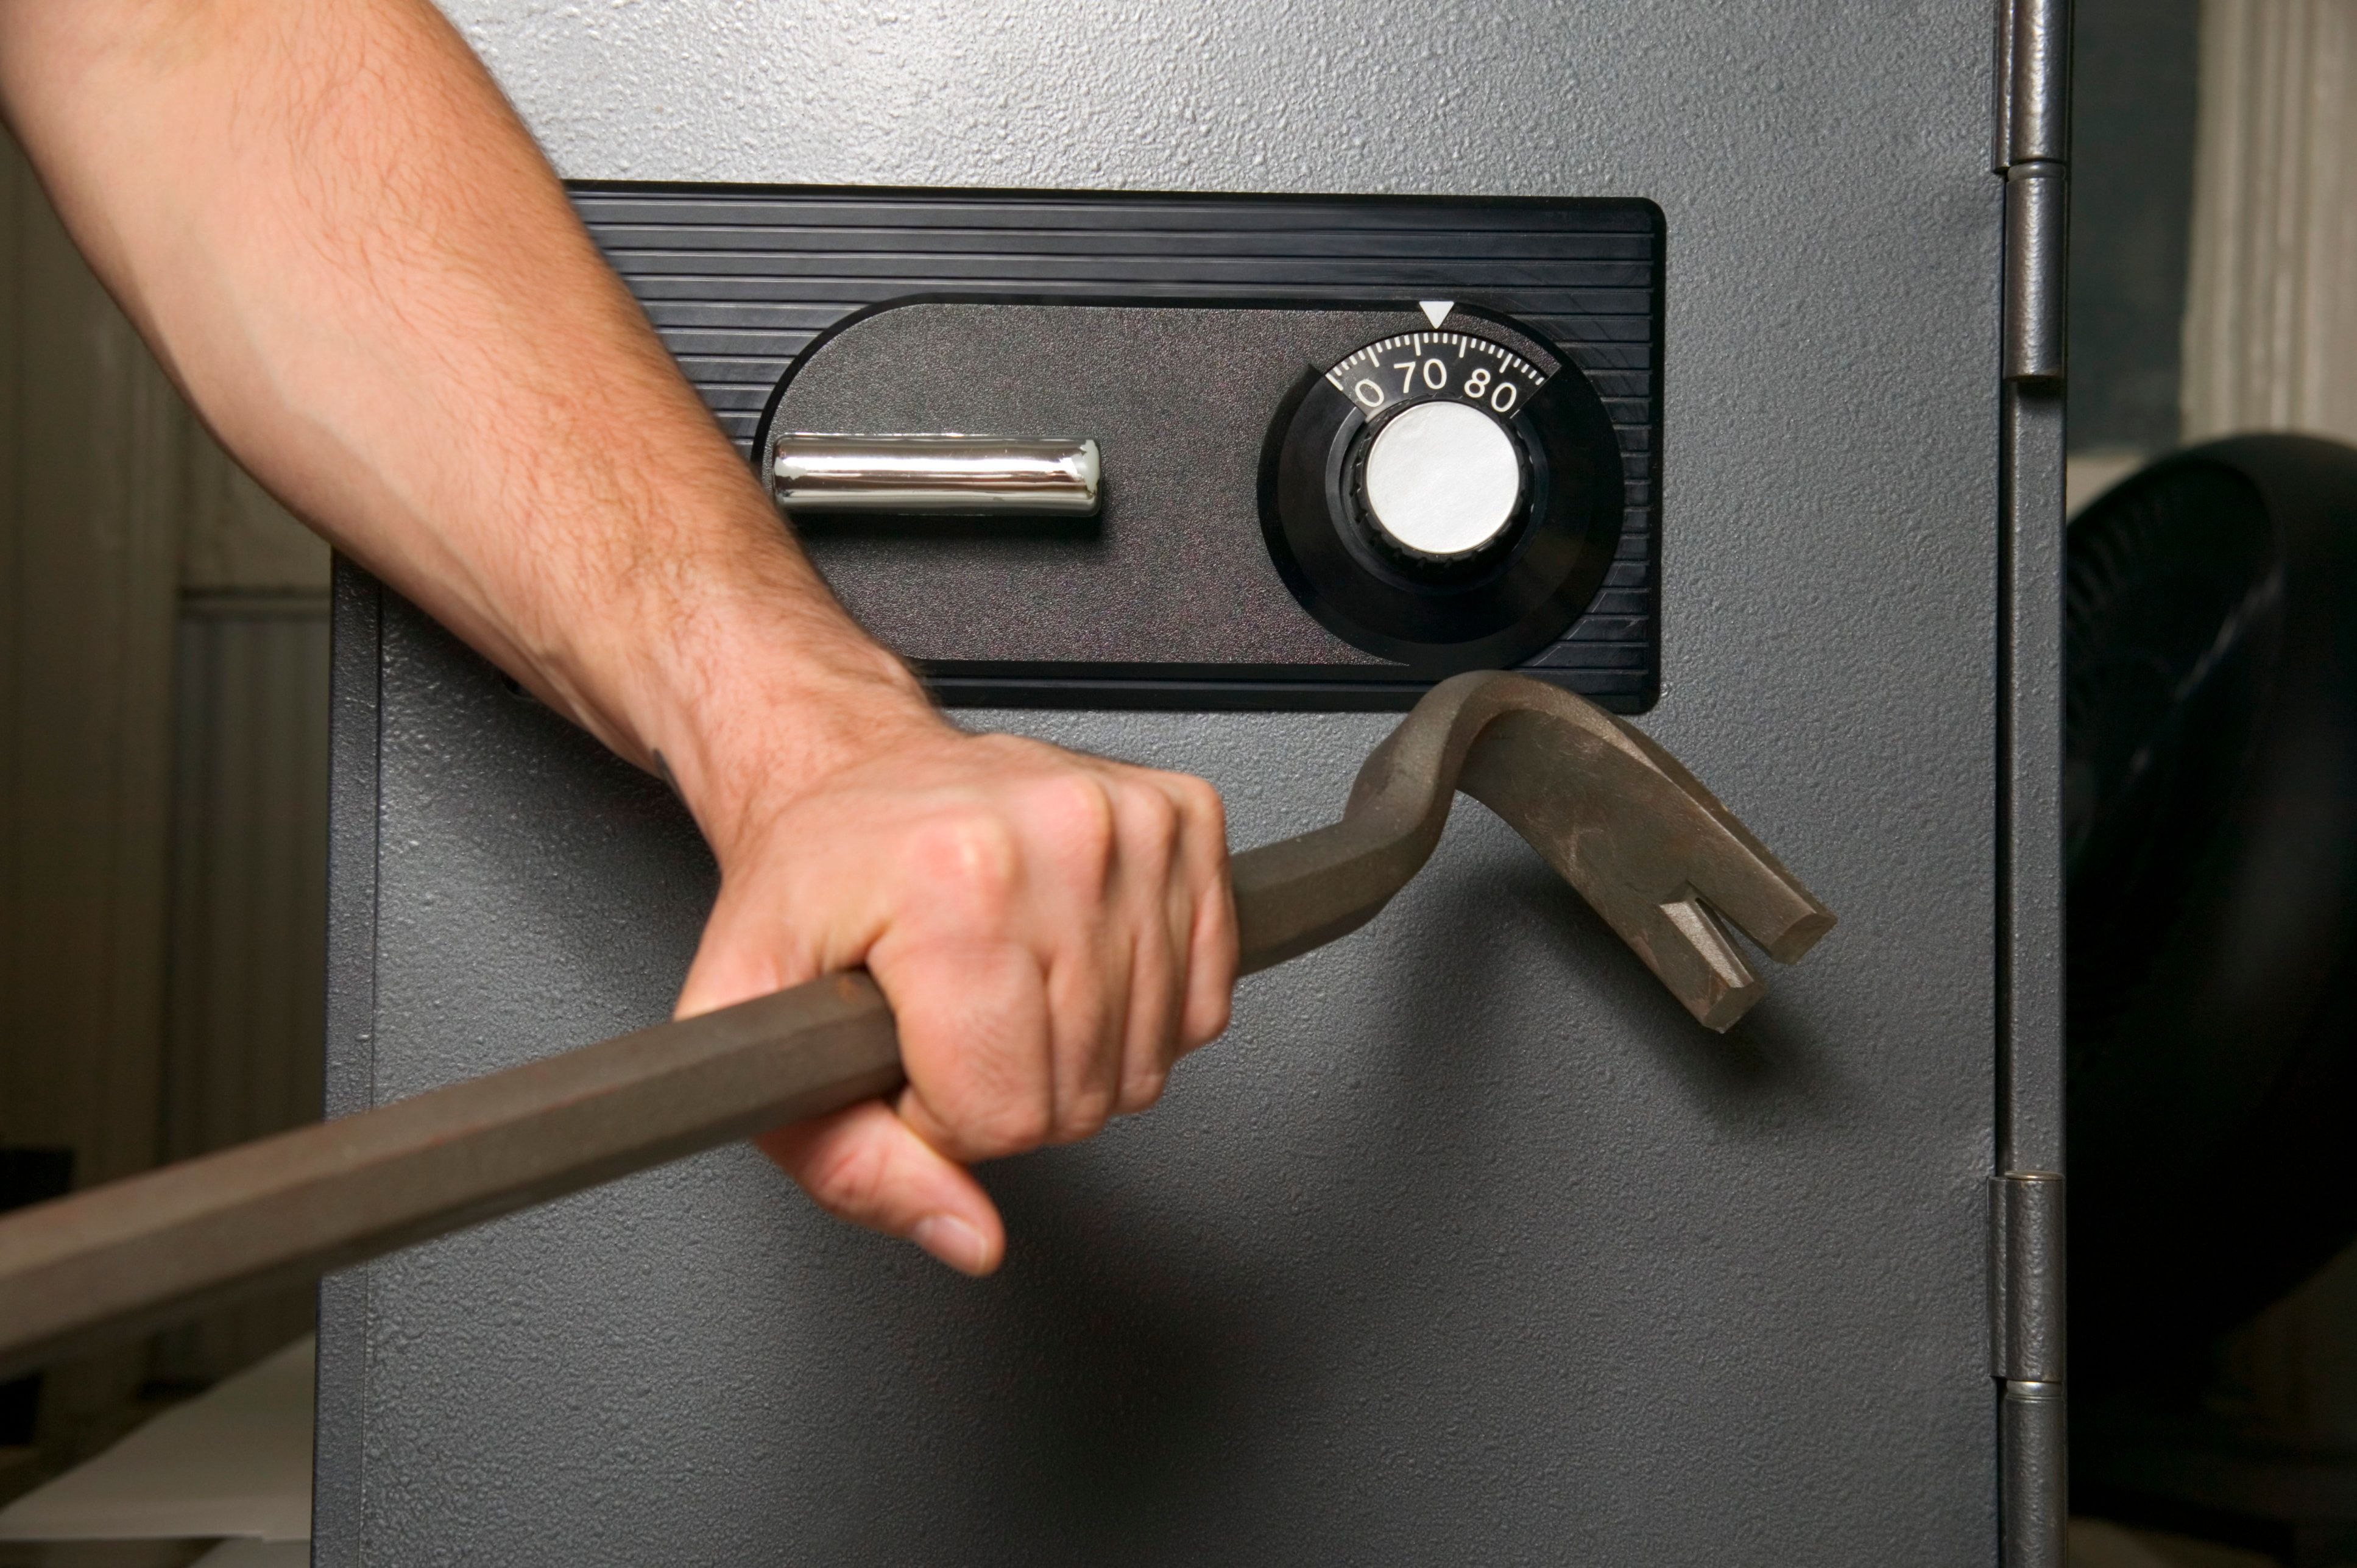 Hand prying safe with crowbar